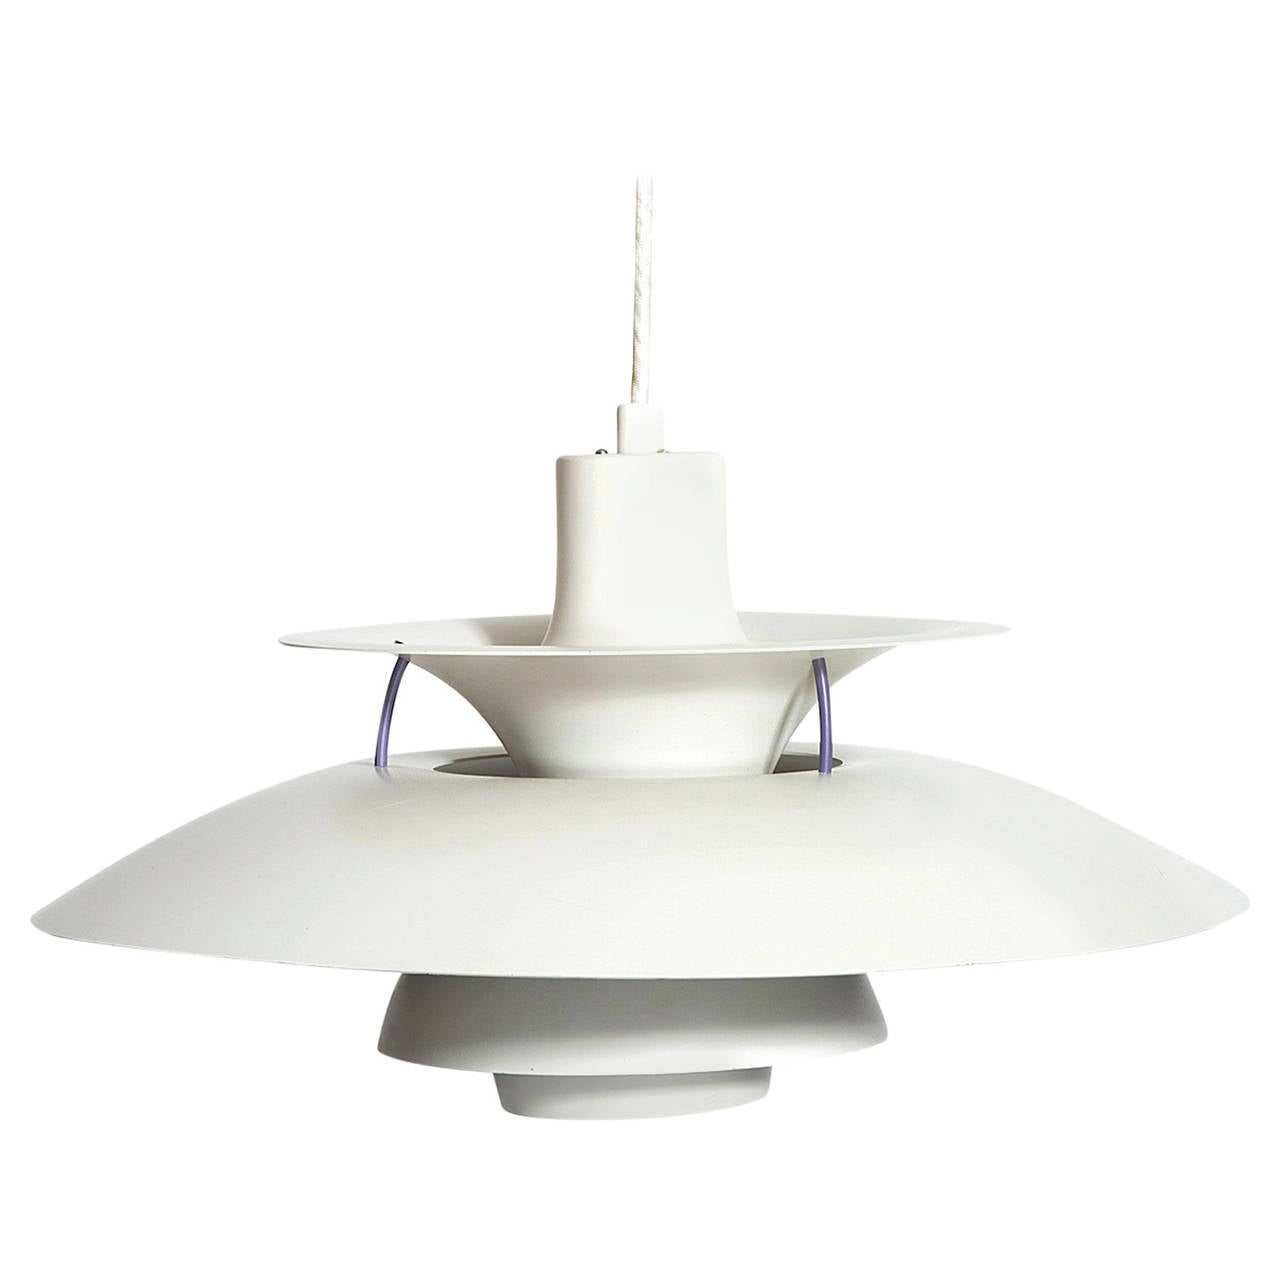 Louis Poulsen White Ph5 Pendant Light By Poul Henningsen